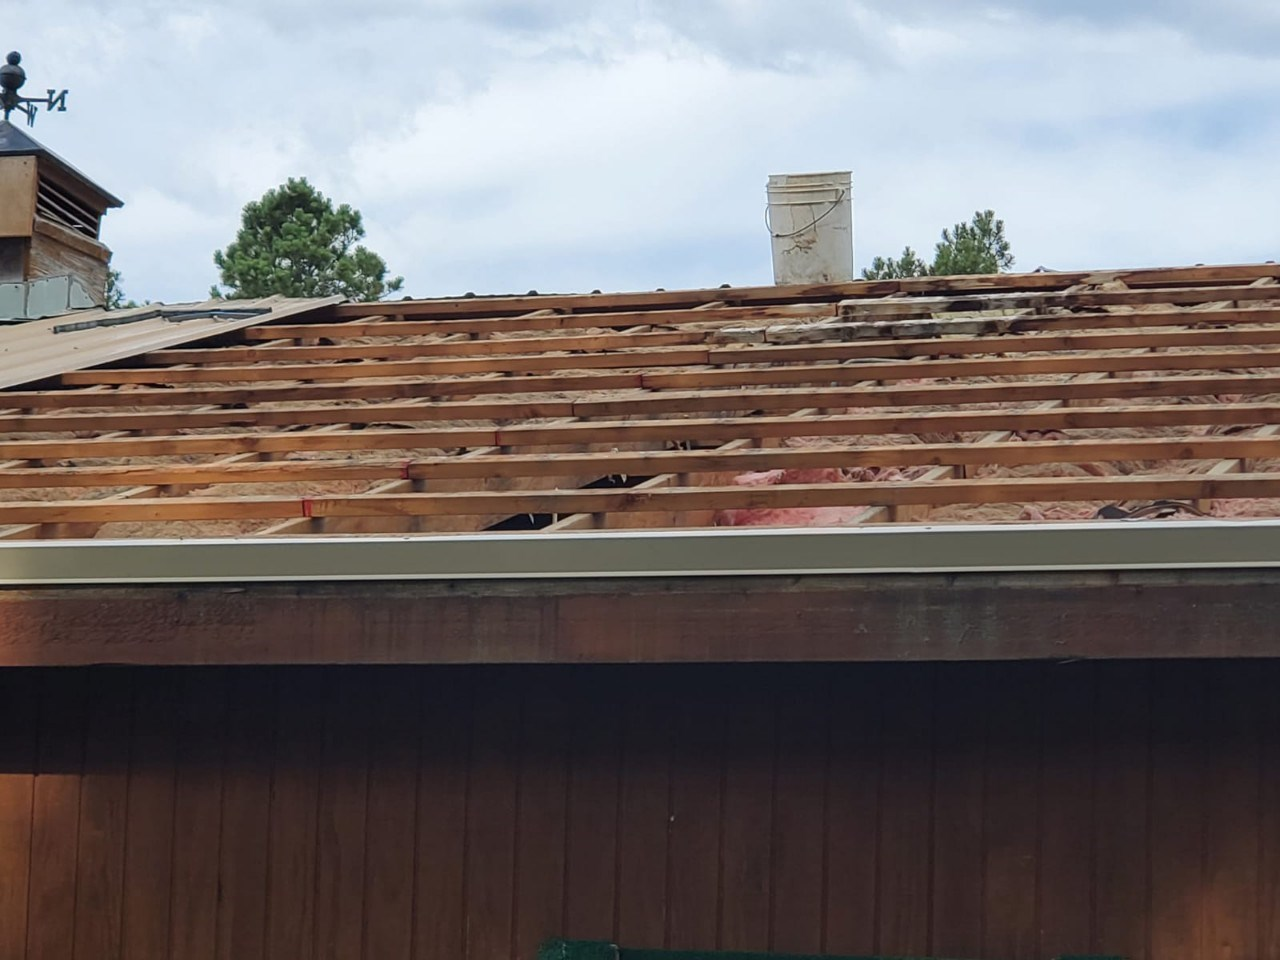 Full replacement of metal panels and weather vanes due to hail damage